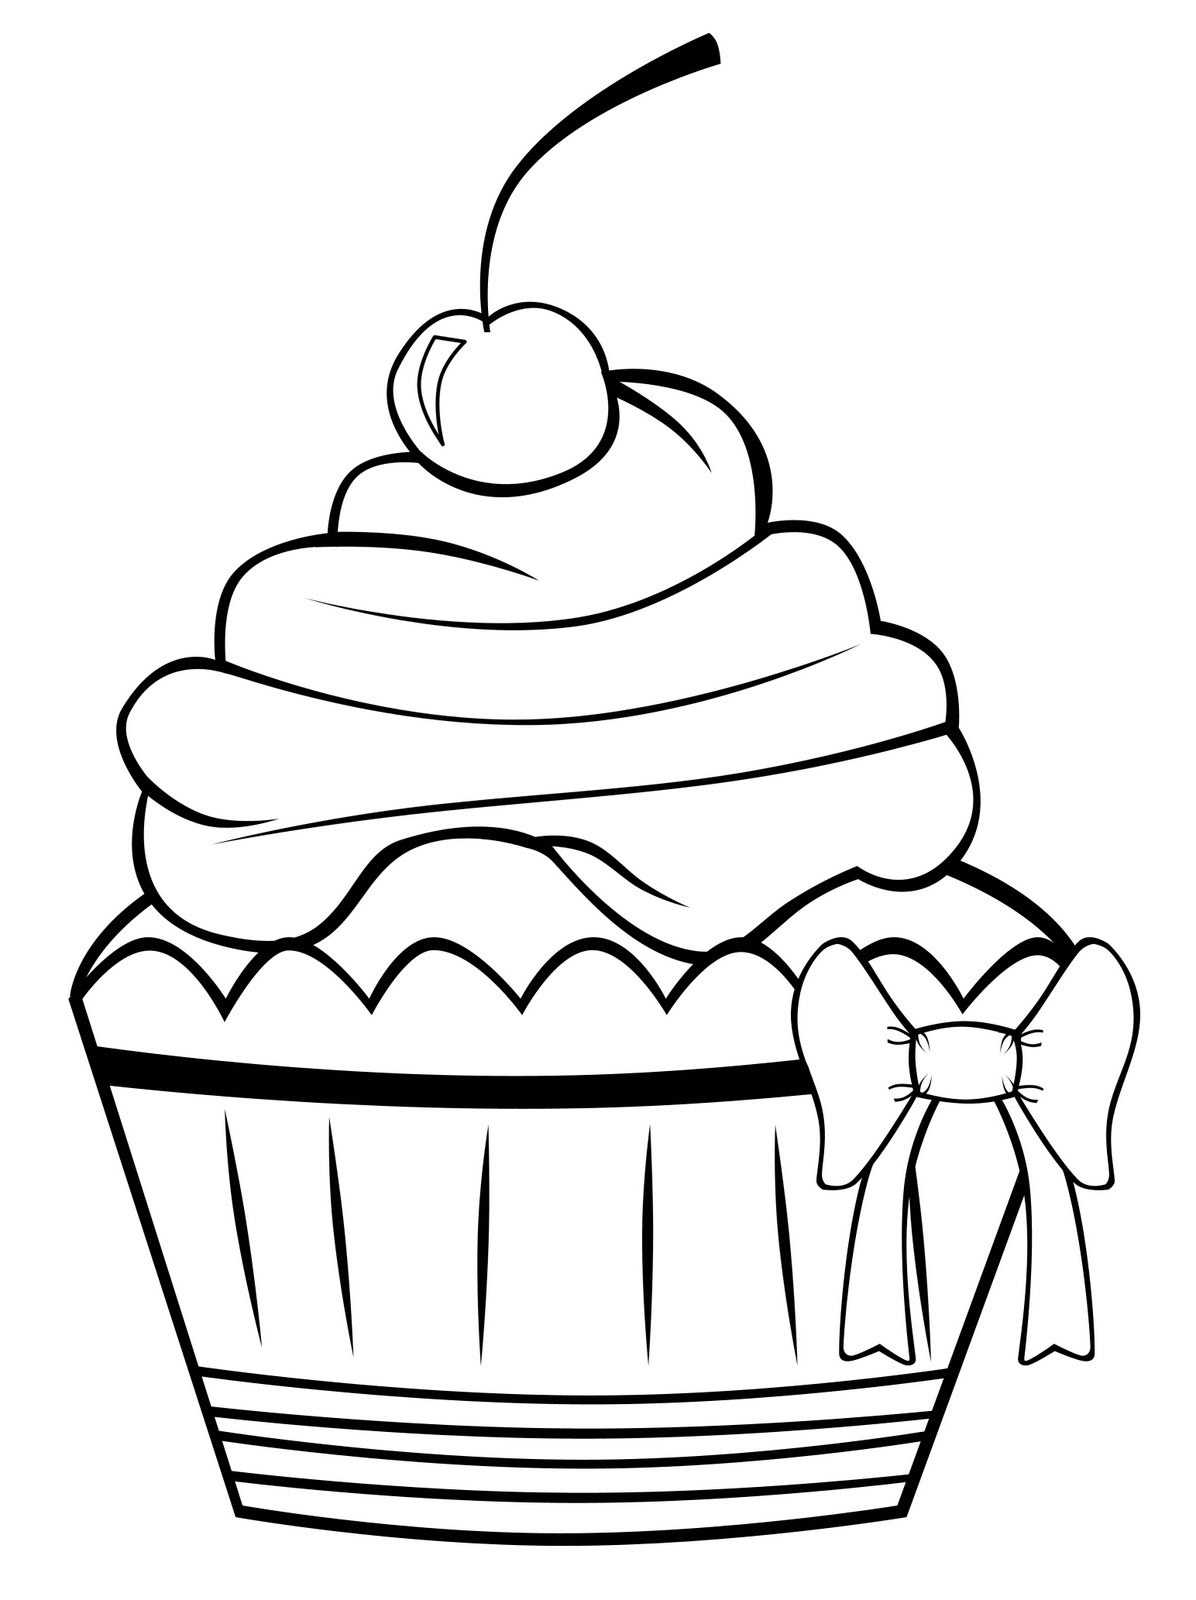 image relating to Printable Cupcakes named Absolutely free Printable Cupcake Coloring Webpages For Little ones